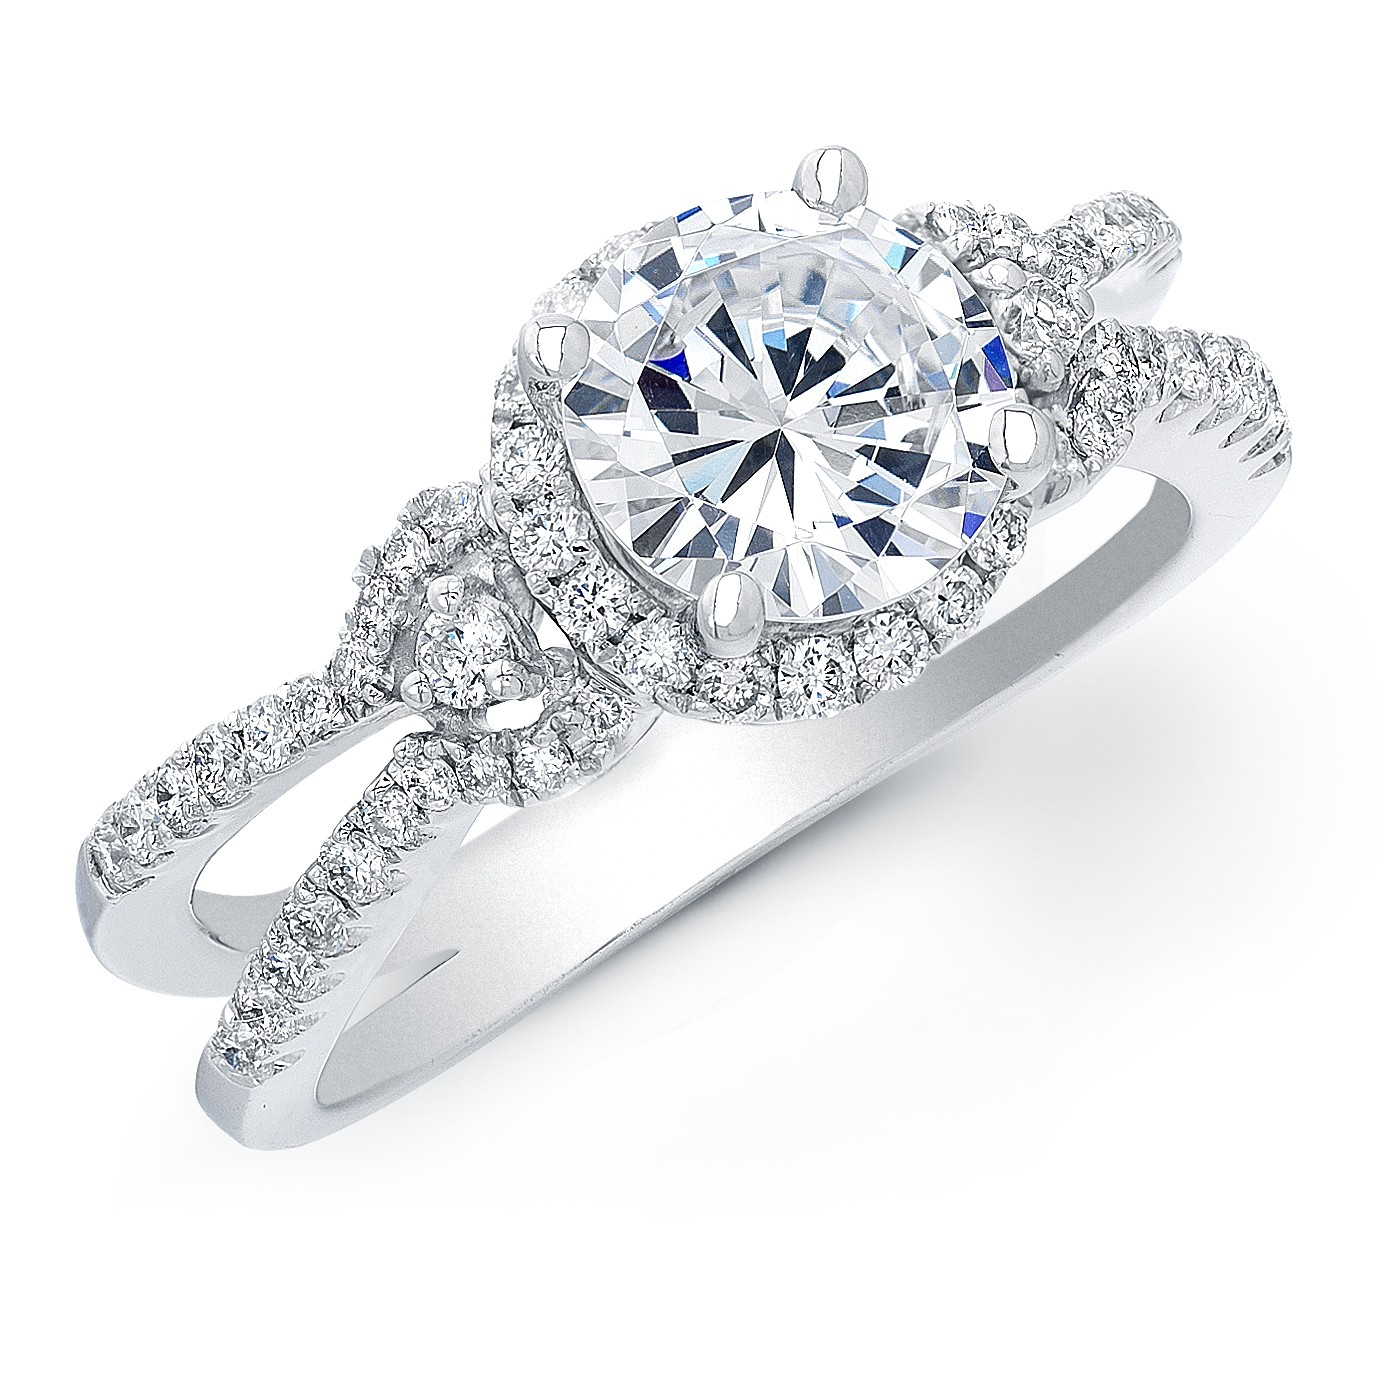 It is a graphic of How Far Would You Travel for the Perfect Engagement Ring?